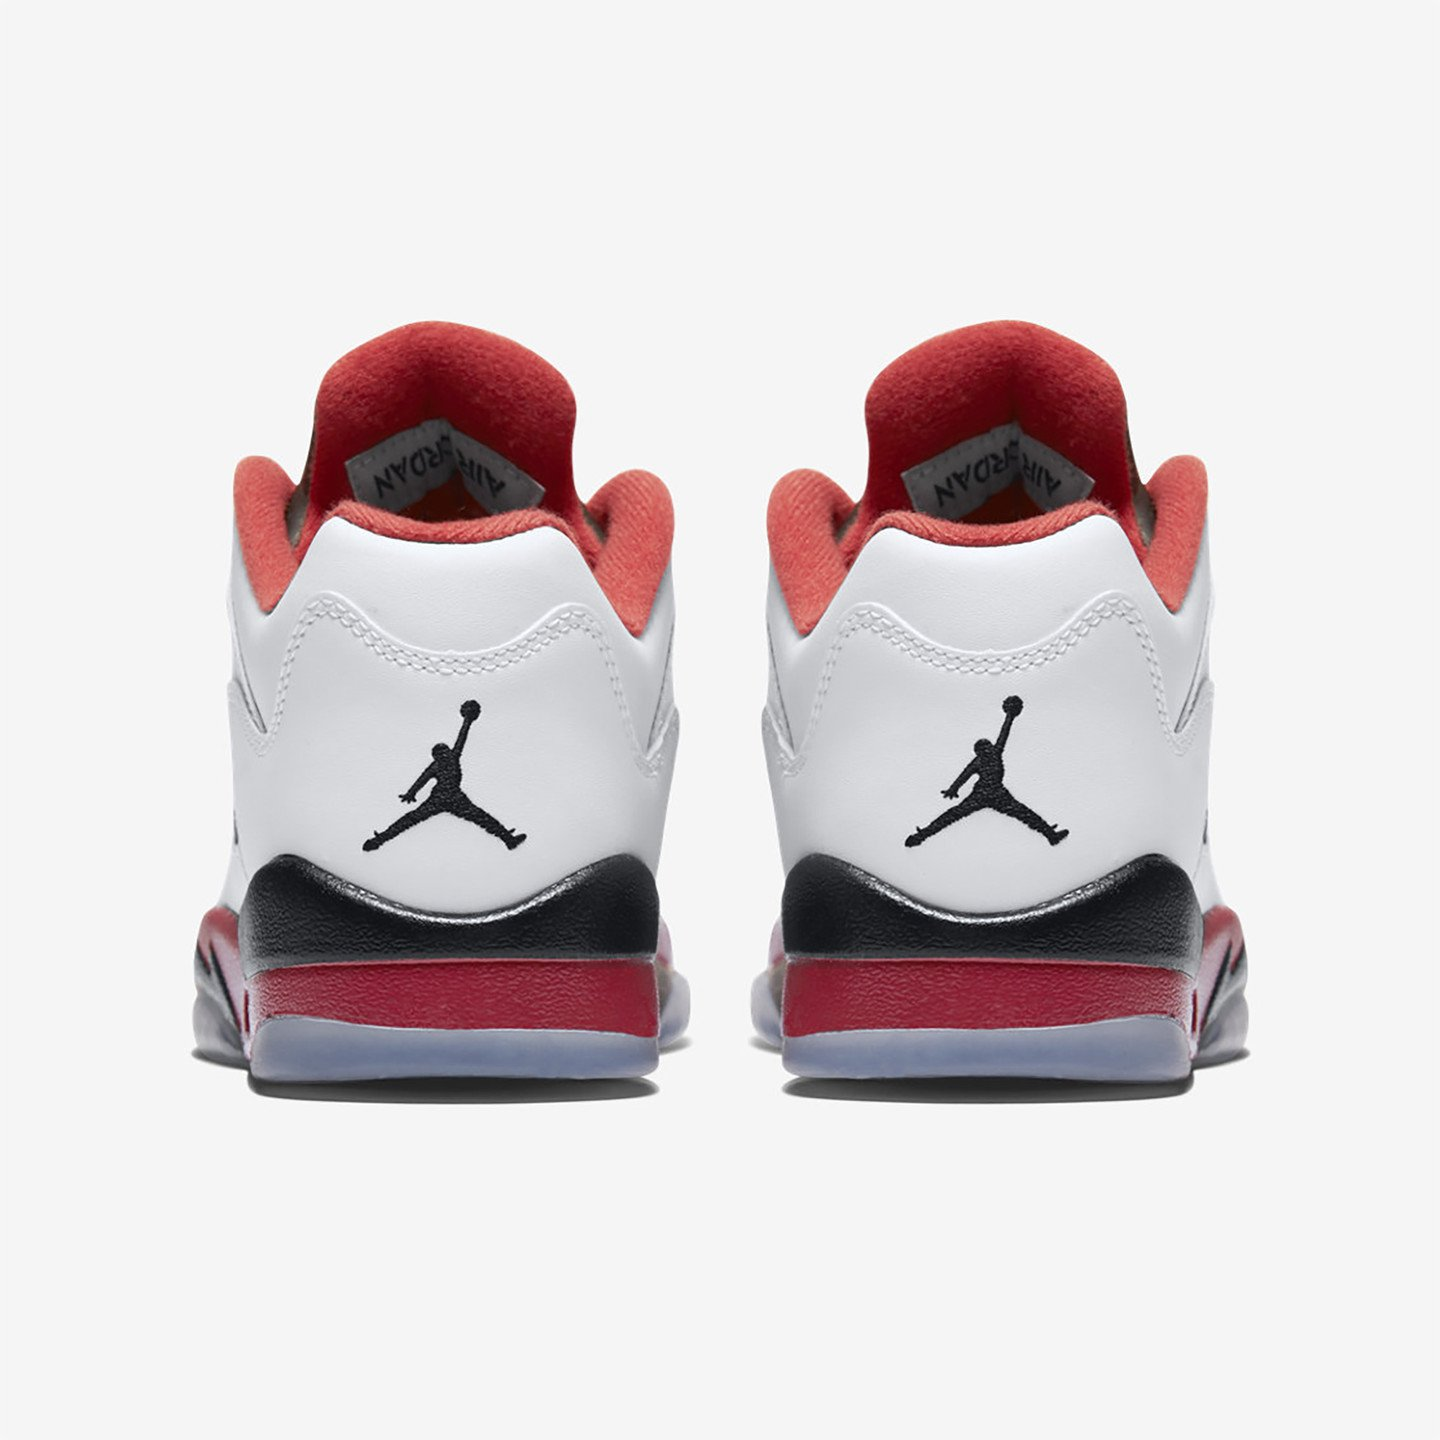 Jordan Air Jordan 5 Low Retro GS 'Fire Red' White / Fire Red / Black 314338-101-38